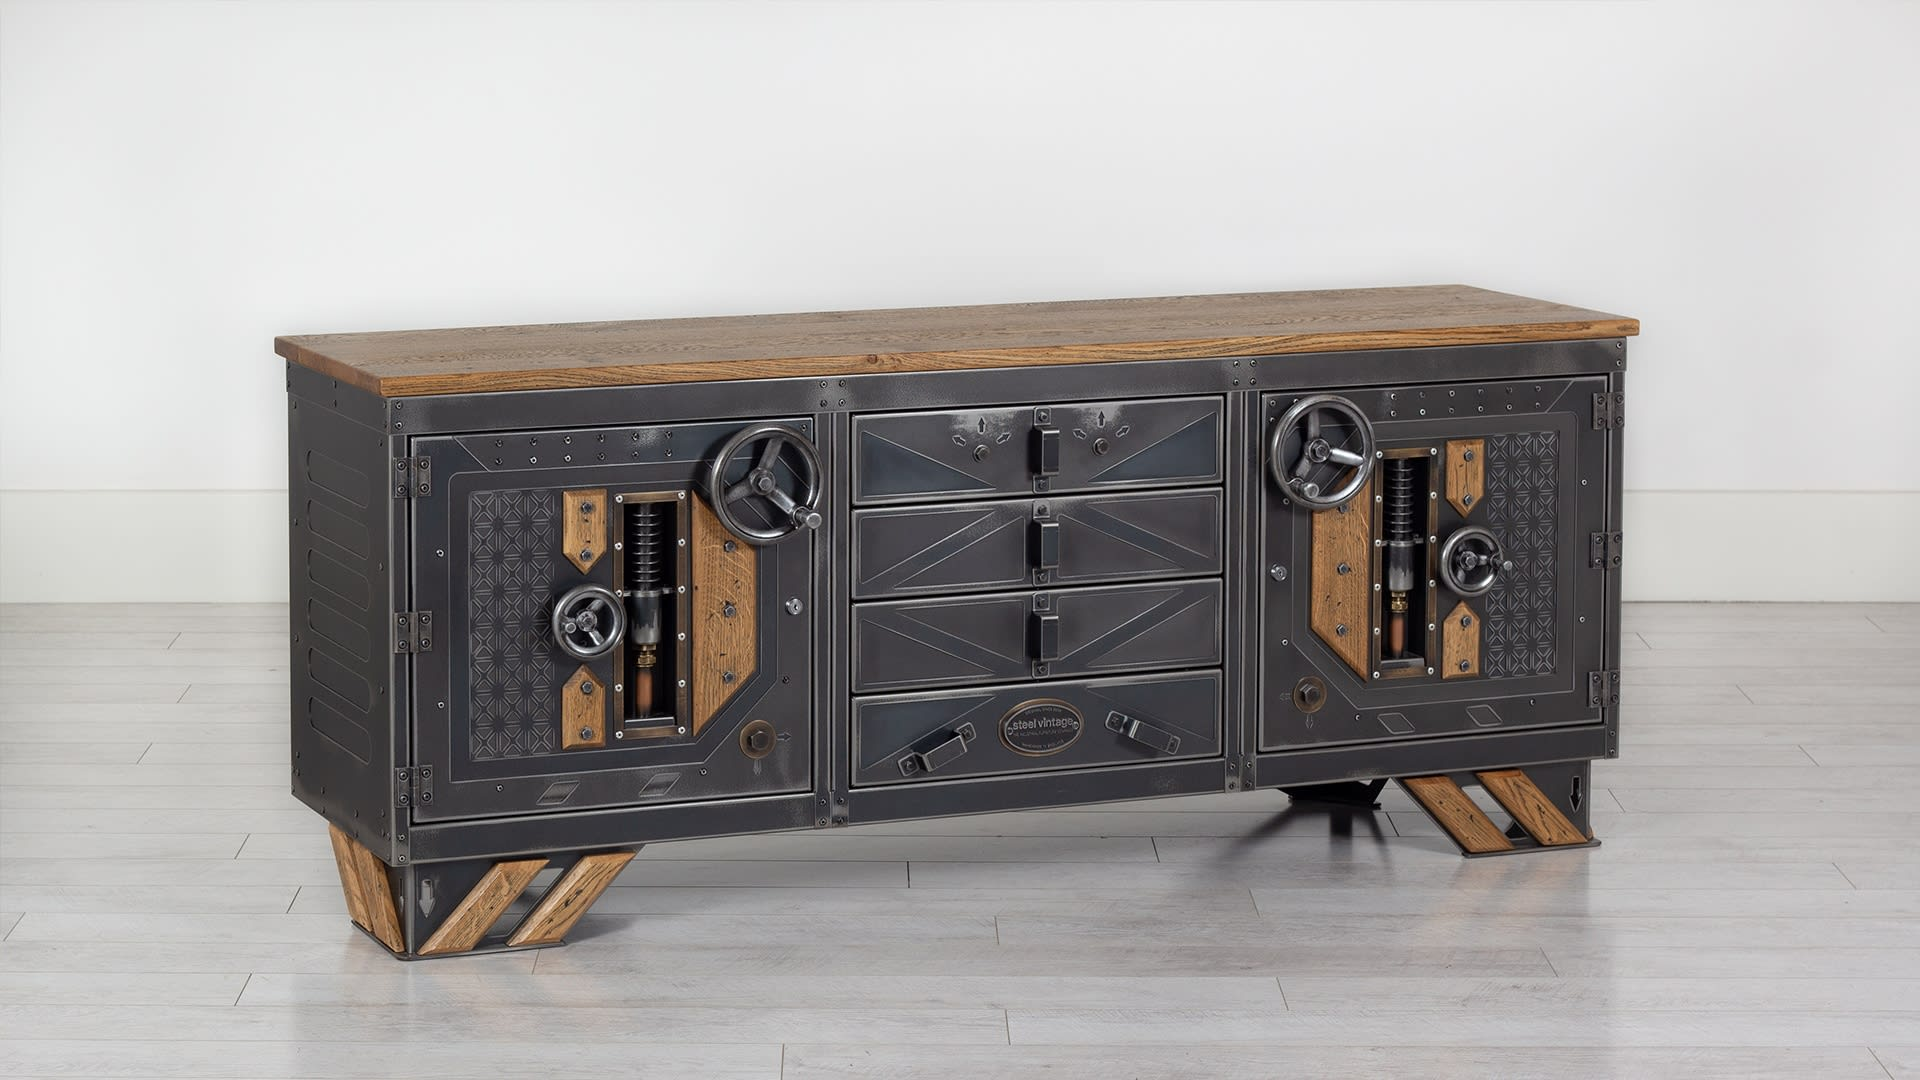 The Steampunk Sideboard 001